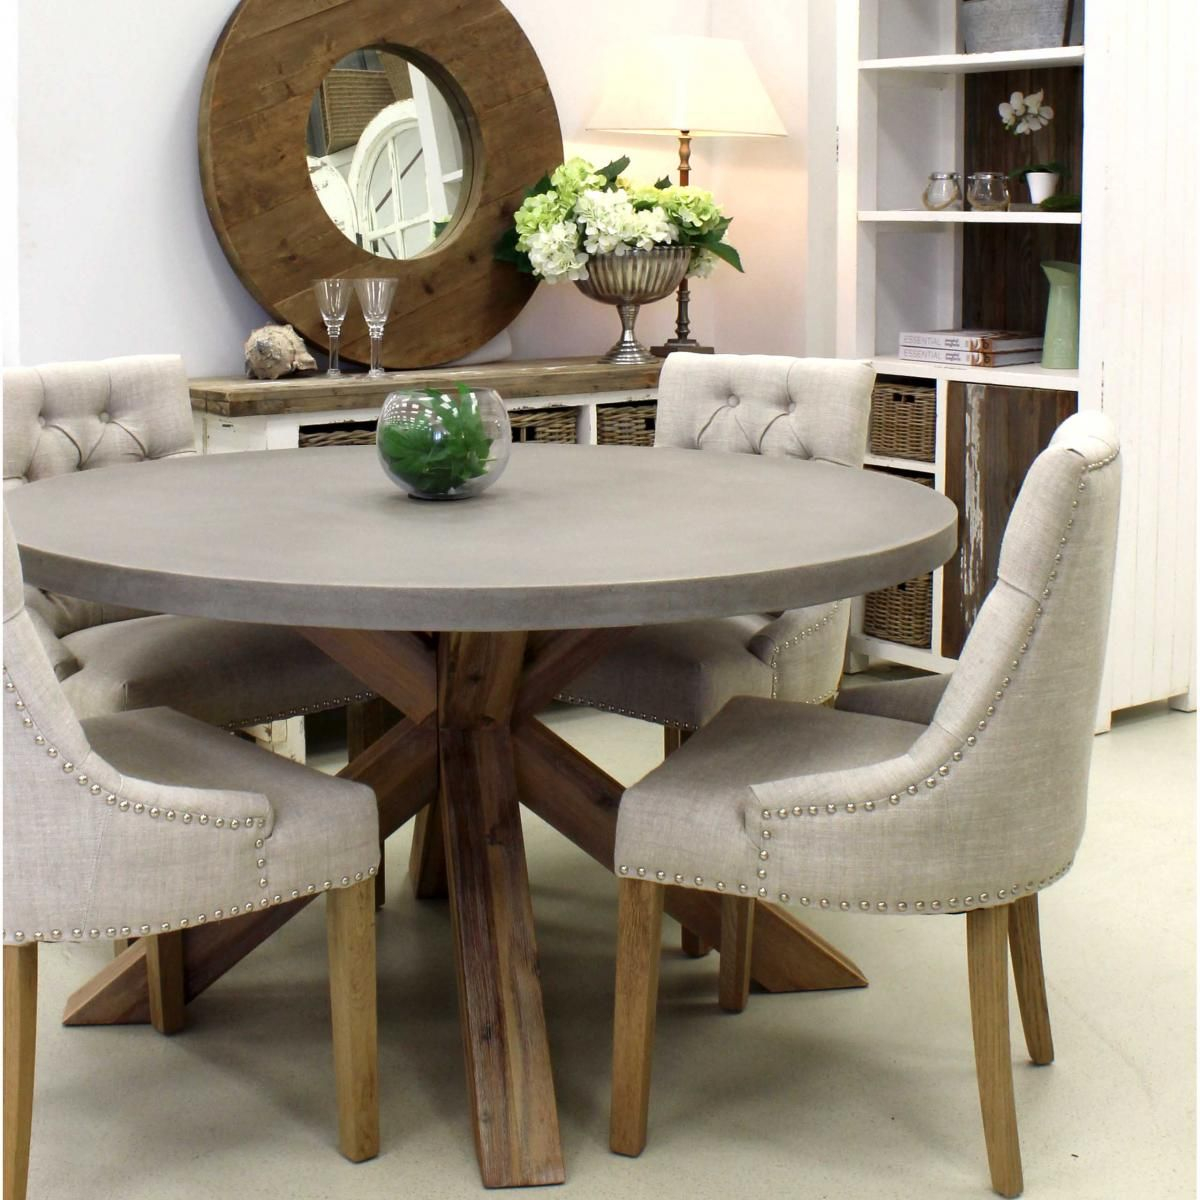 Round Concrete Dining Table Urban Beach Lifestyle for sizing 1200 X 1200